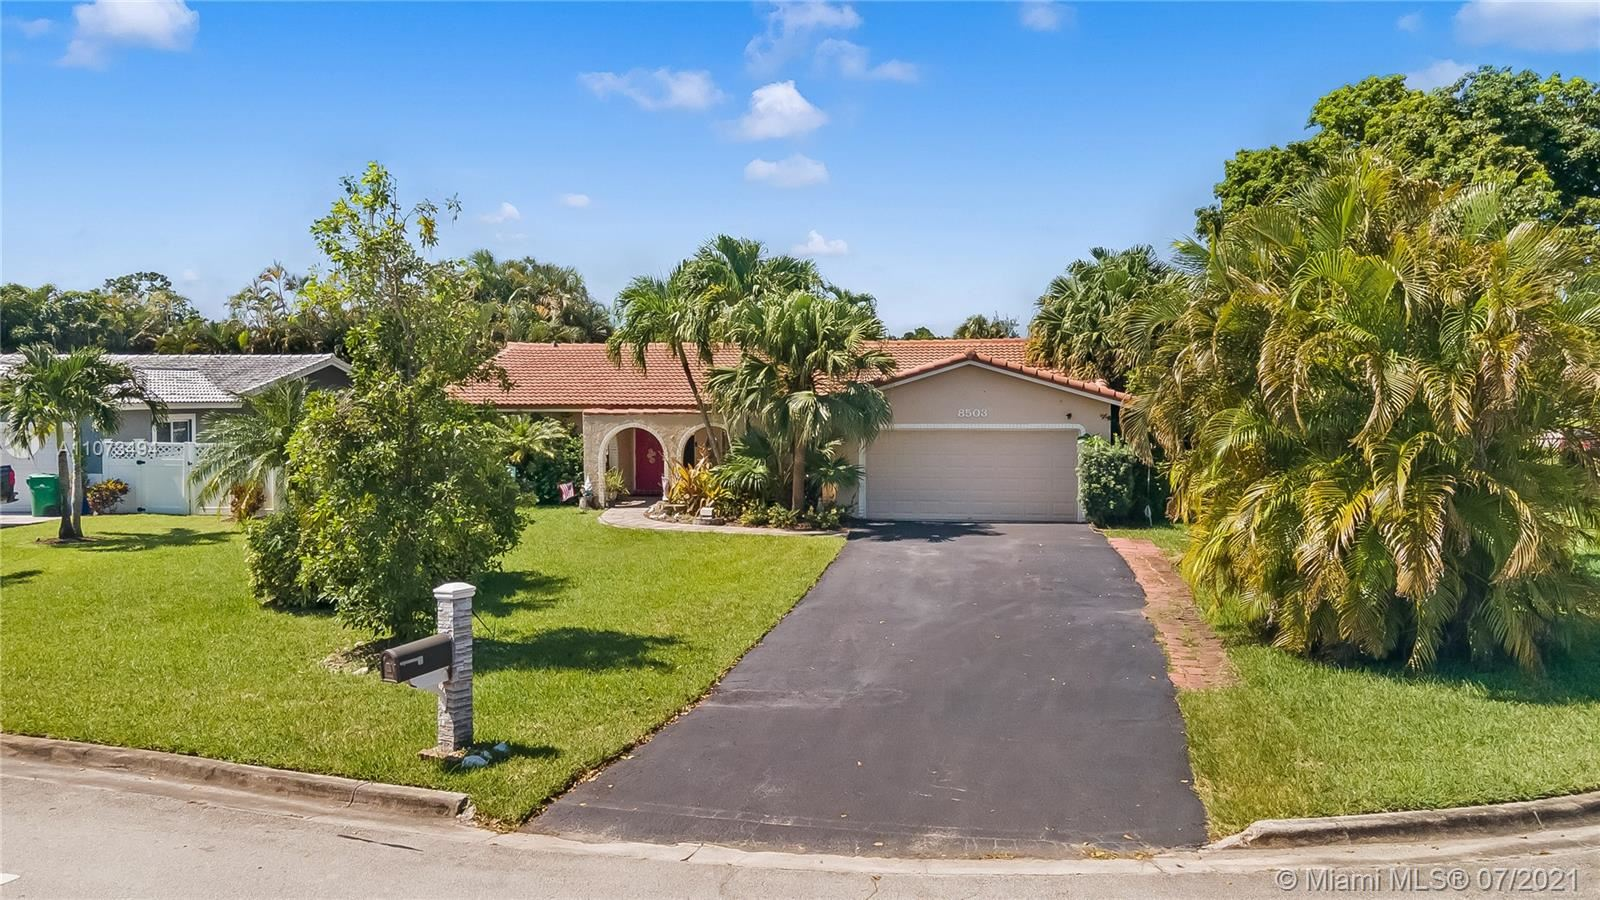 8503 NW 19th Dr, Coral Springs, FL 33071 - #: A11073494